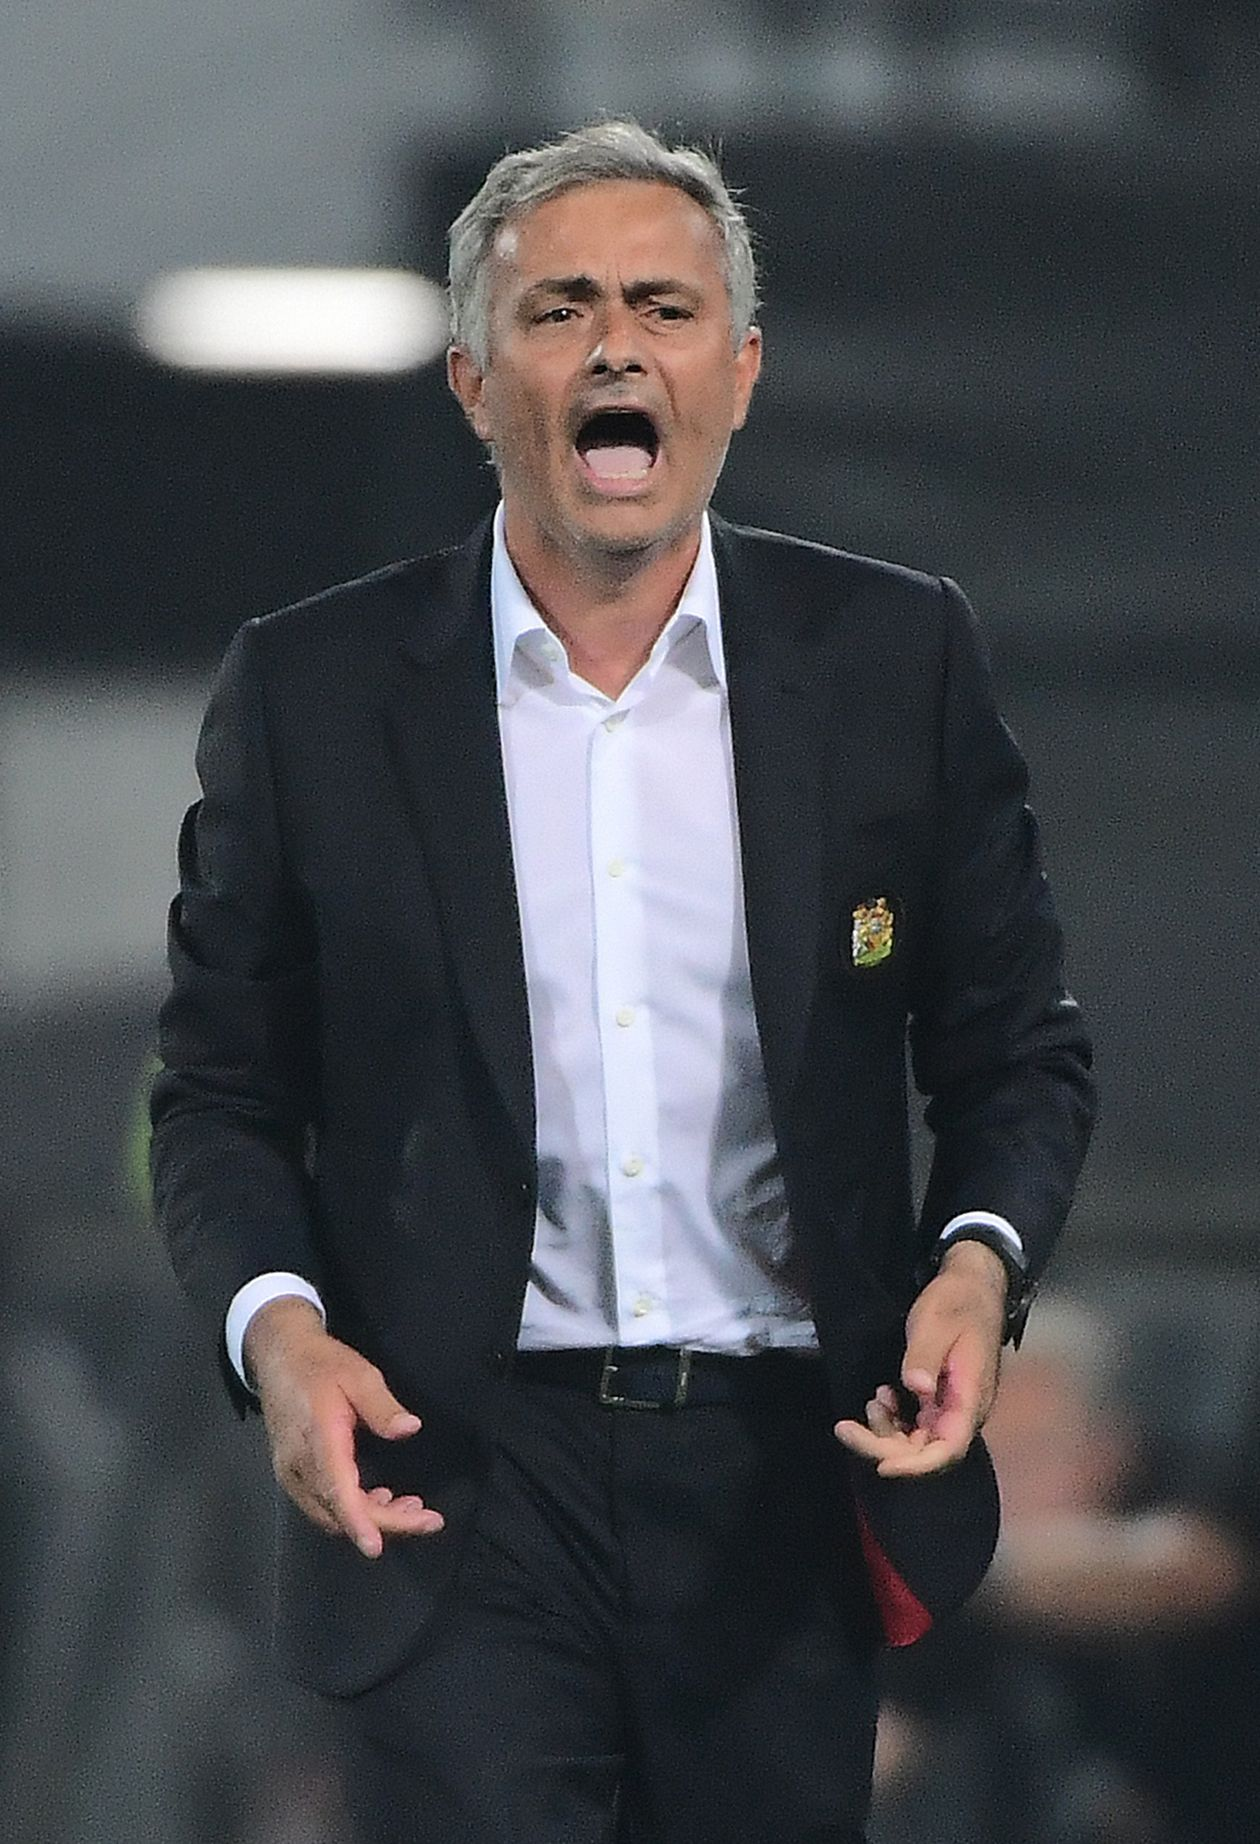 Jose Mourinho: Transfer Blow For Manchester United Manager Amid Old Trafford Crisis